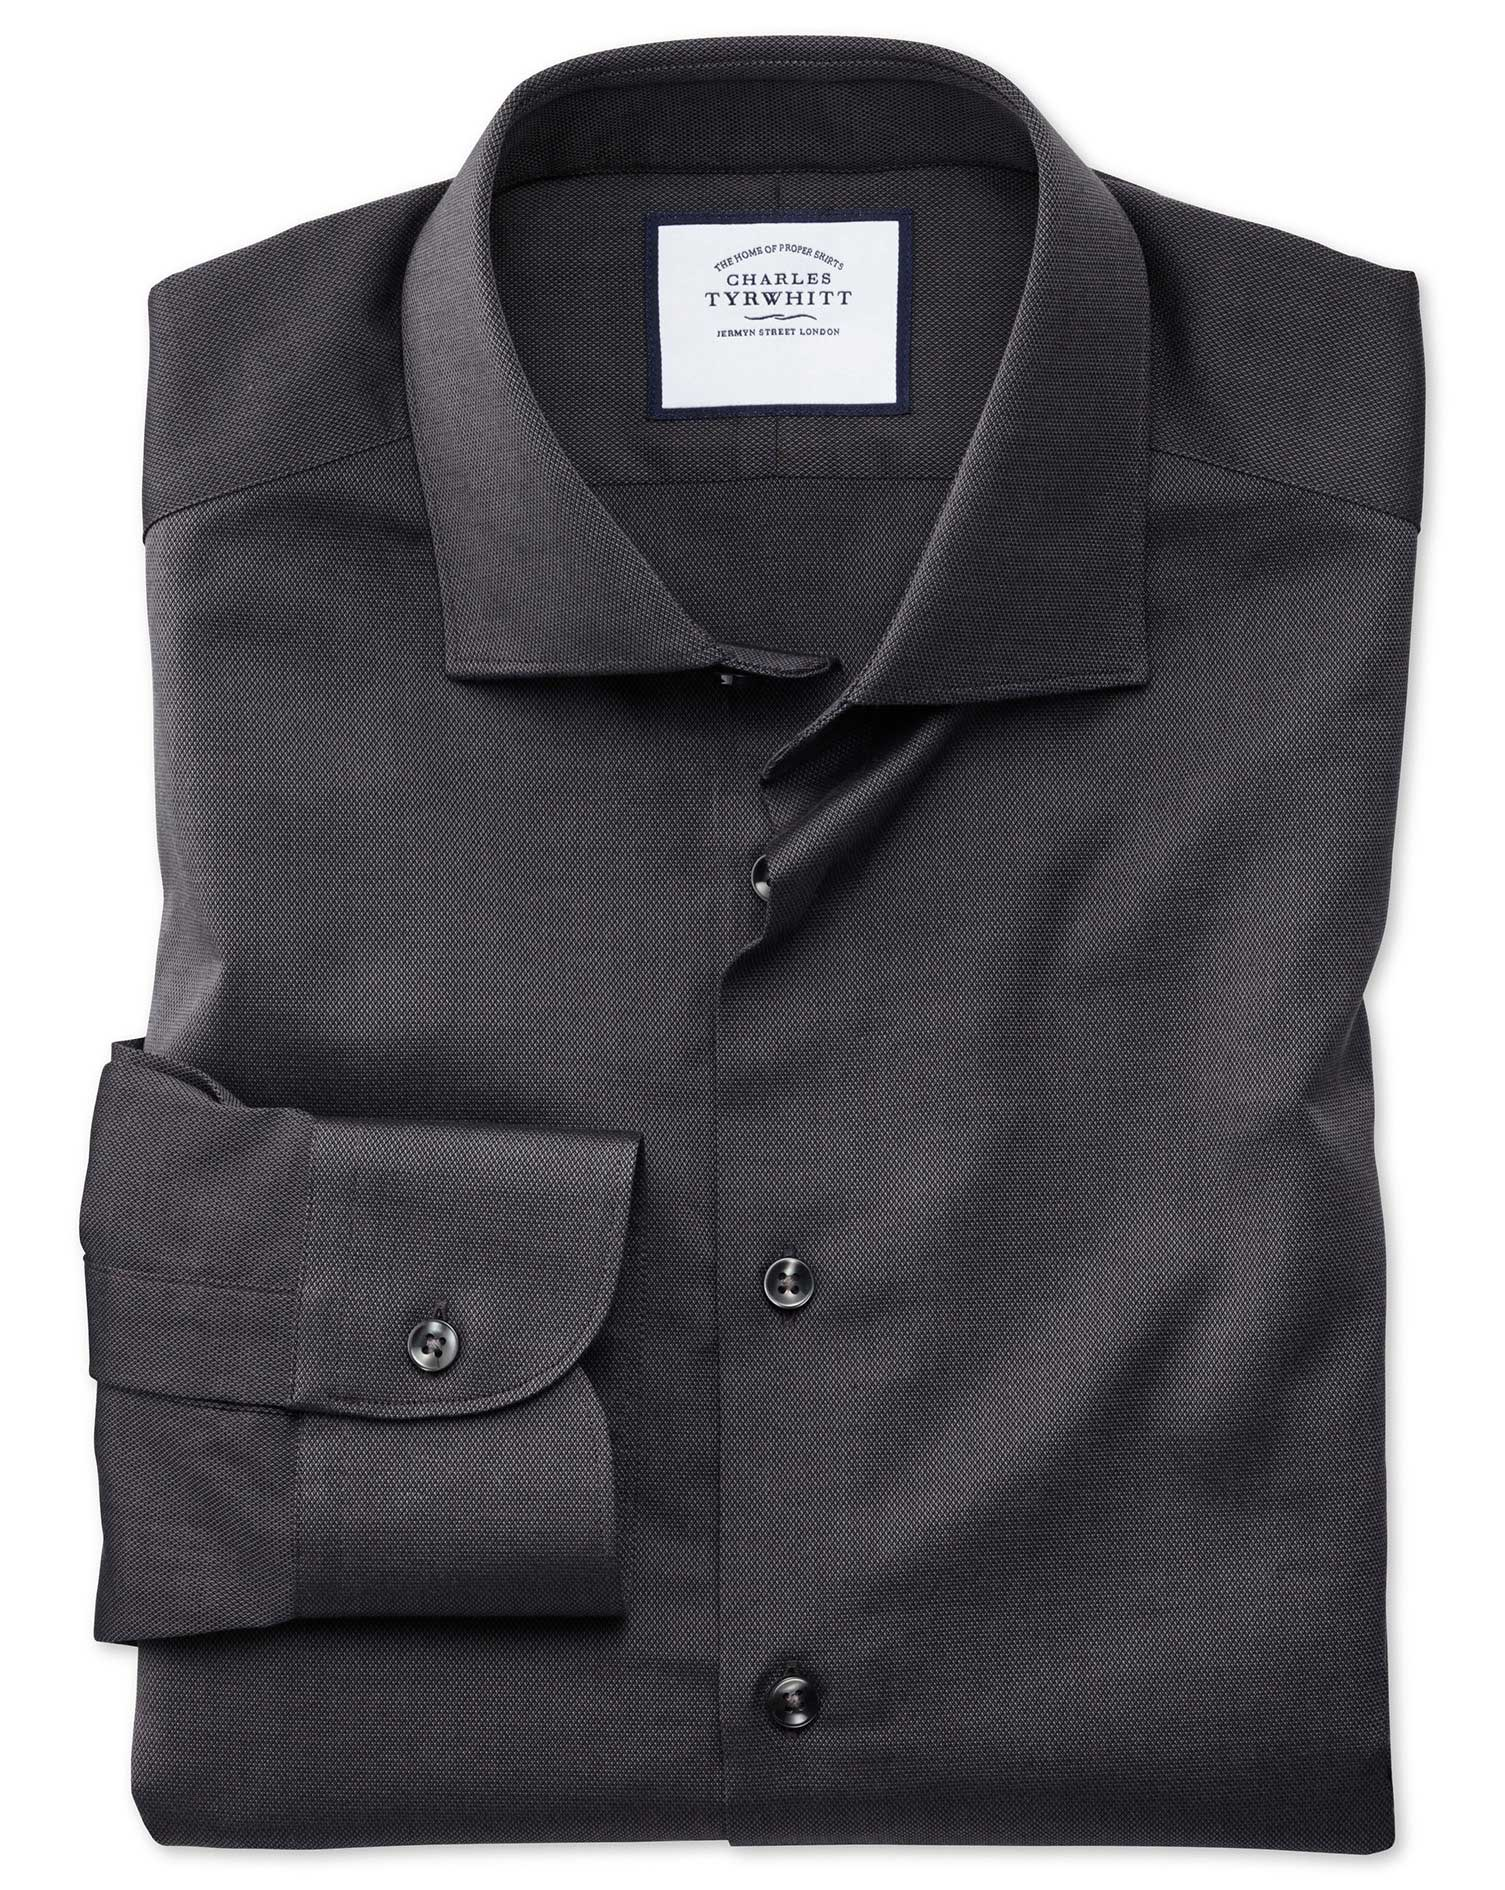 Classic Fit Business Casual Charcoal Royal Oxford Cotton Formal Shirt Single Cuff Size 16.5/33 by Ch